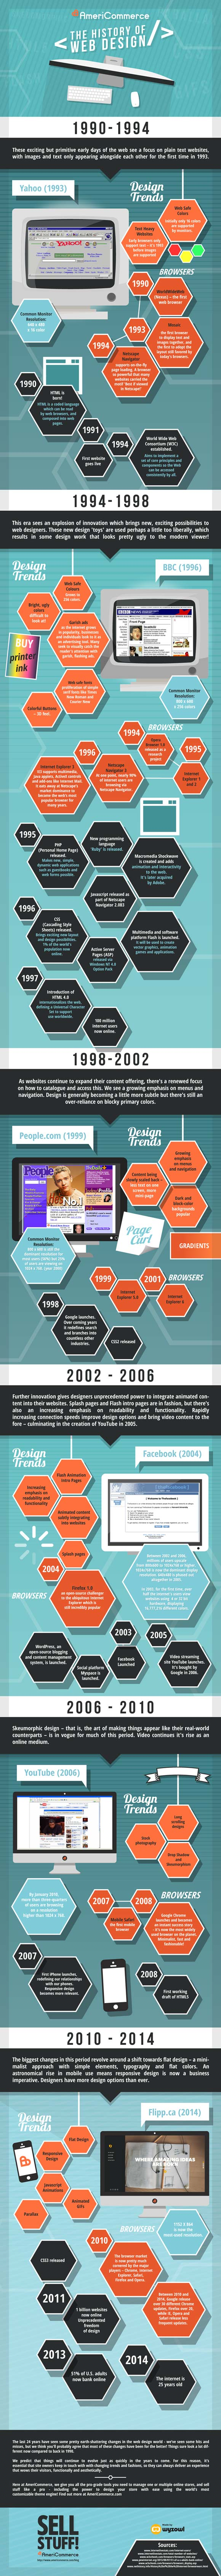 The History of Web Design – Infographic